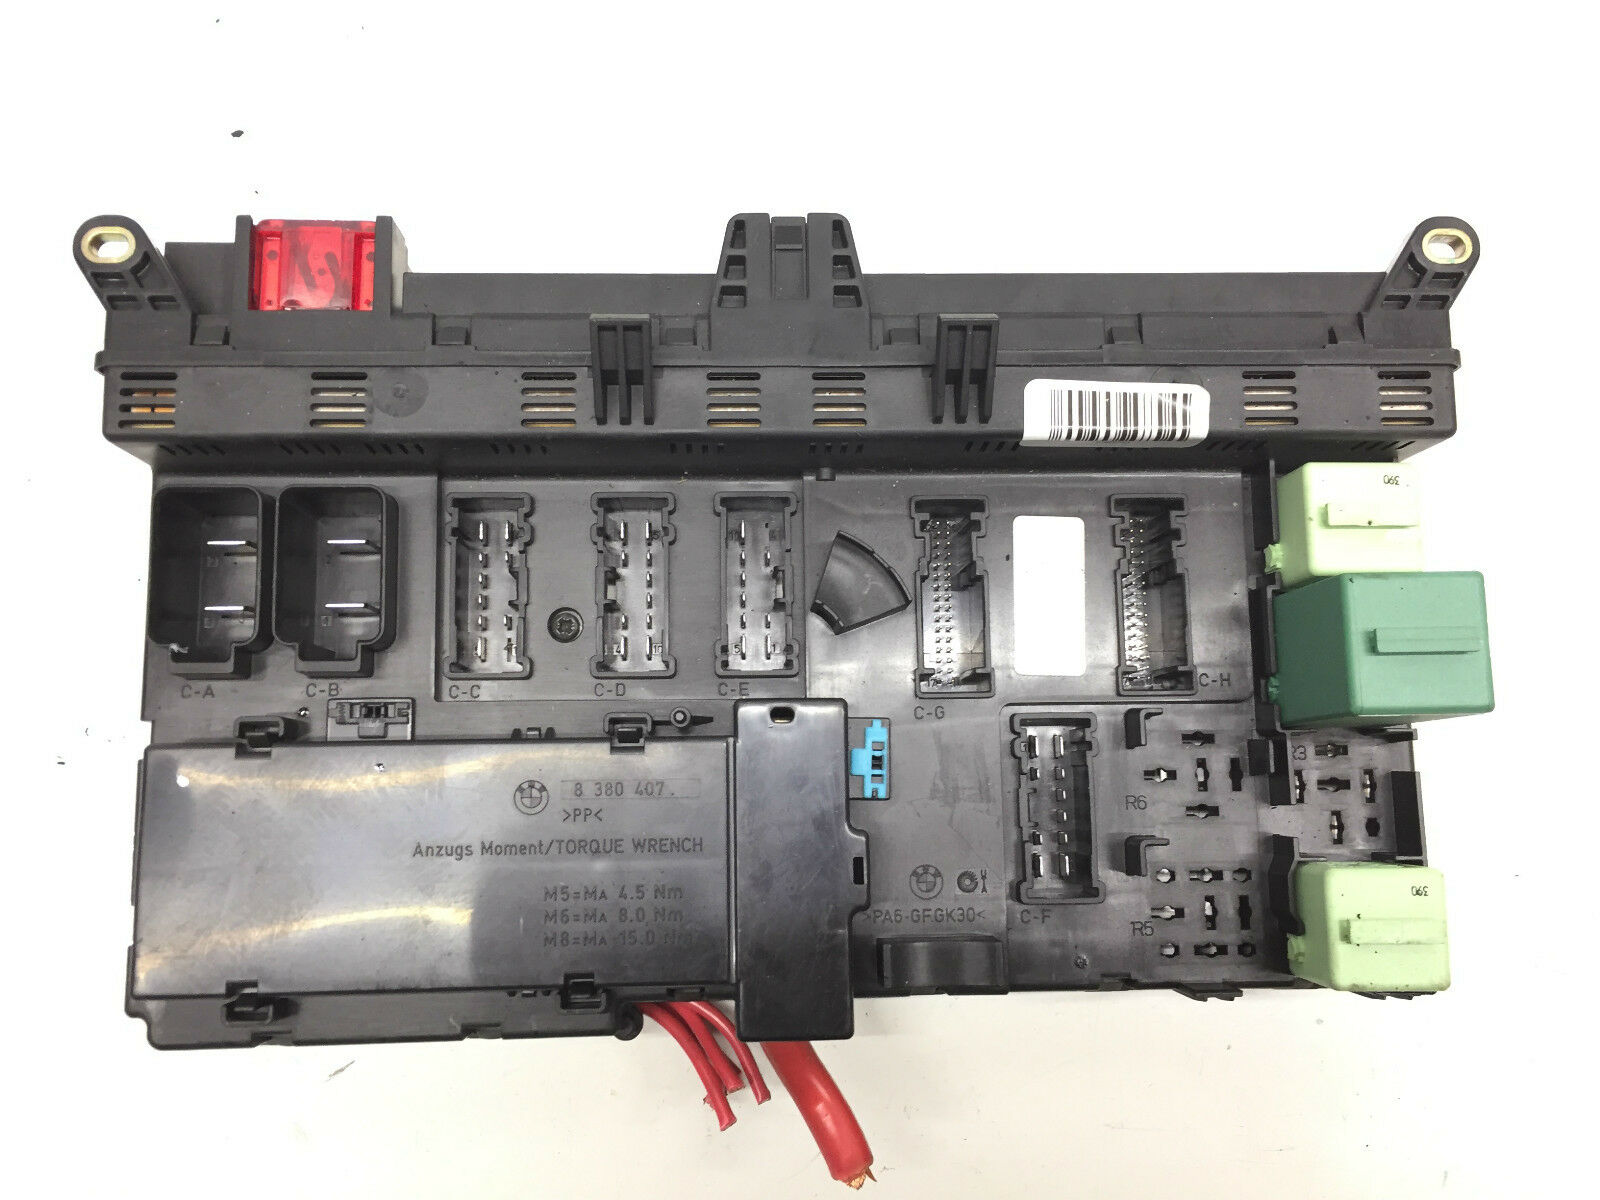 Bmw X5 E53 M62 44i Engine Fuse Box Relay 6907395 2375 Picclick Uk Buy Spares For I Fuses And 1 Of 1only Available